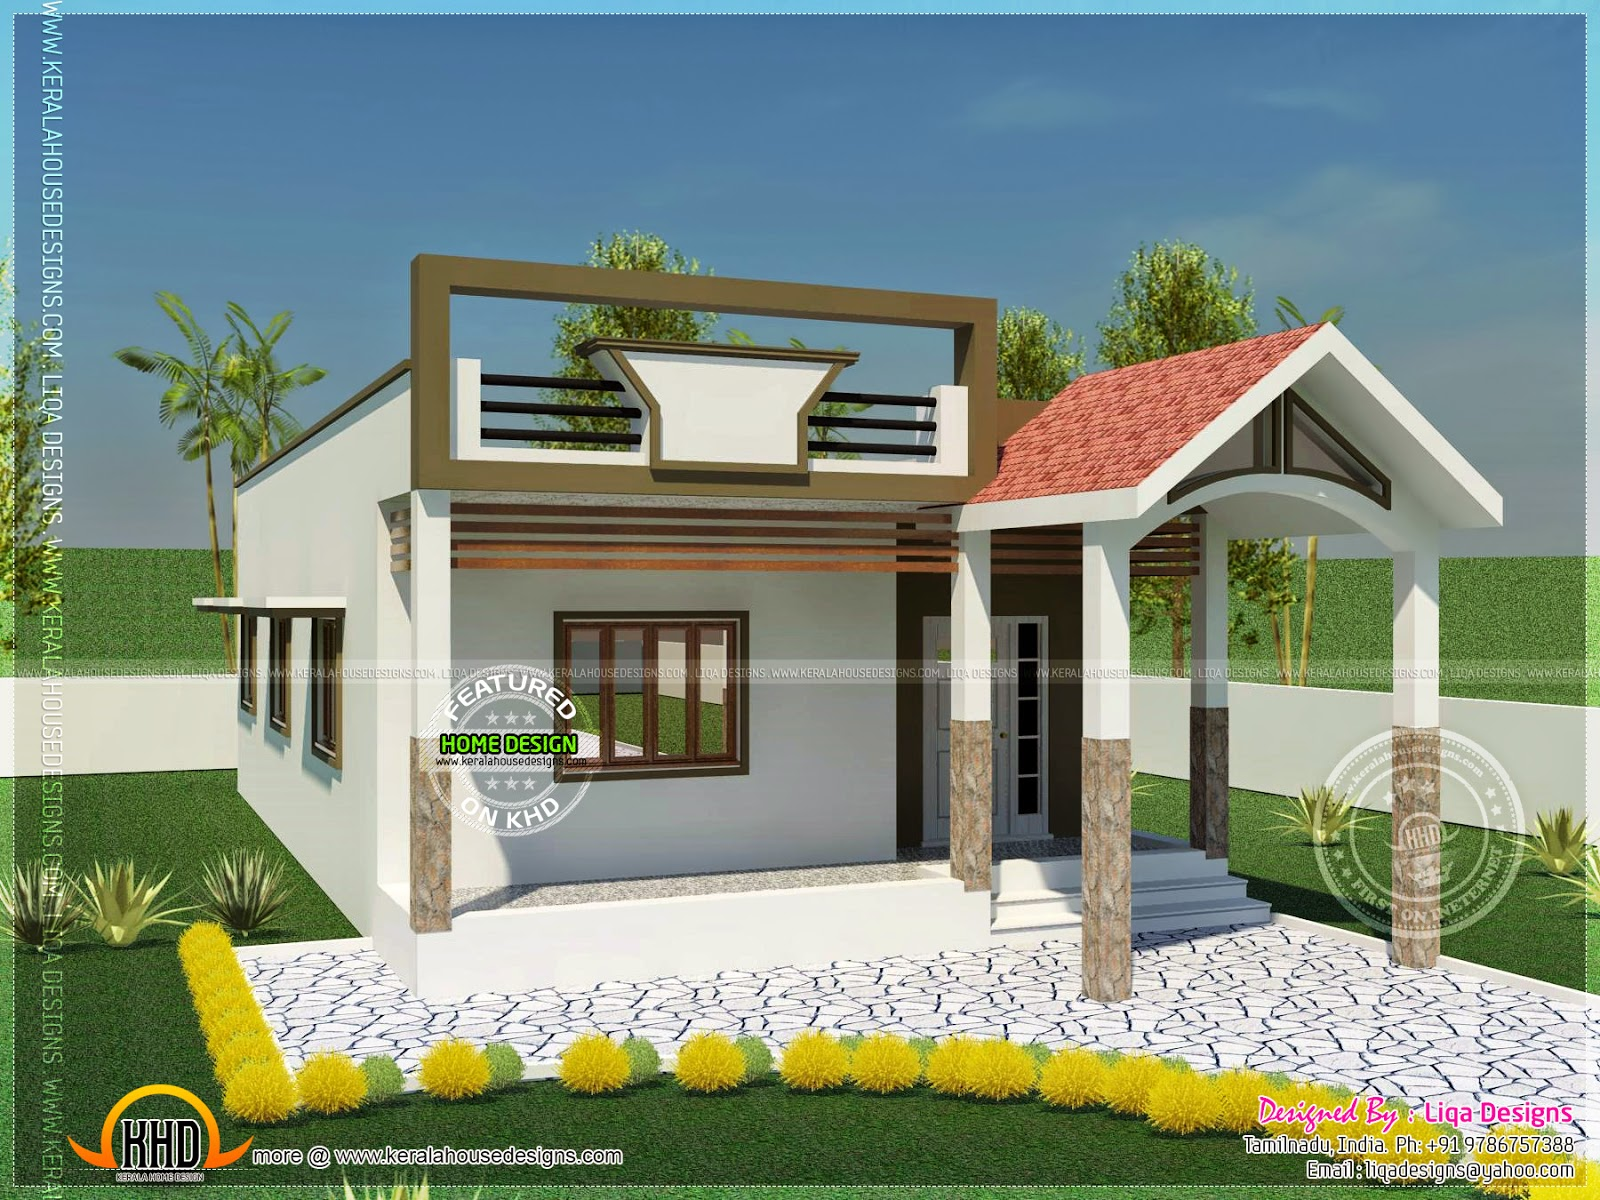 740 square feet single storied house kerala home design for Single house design